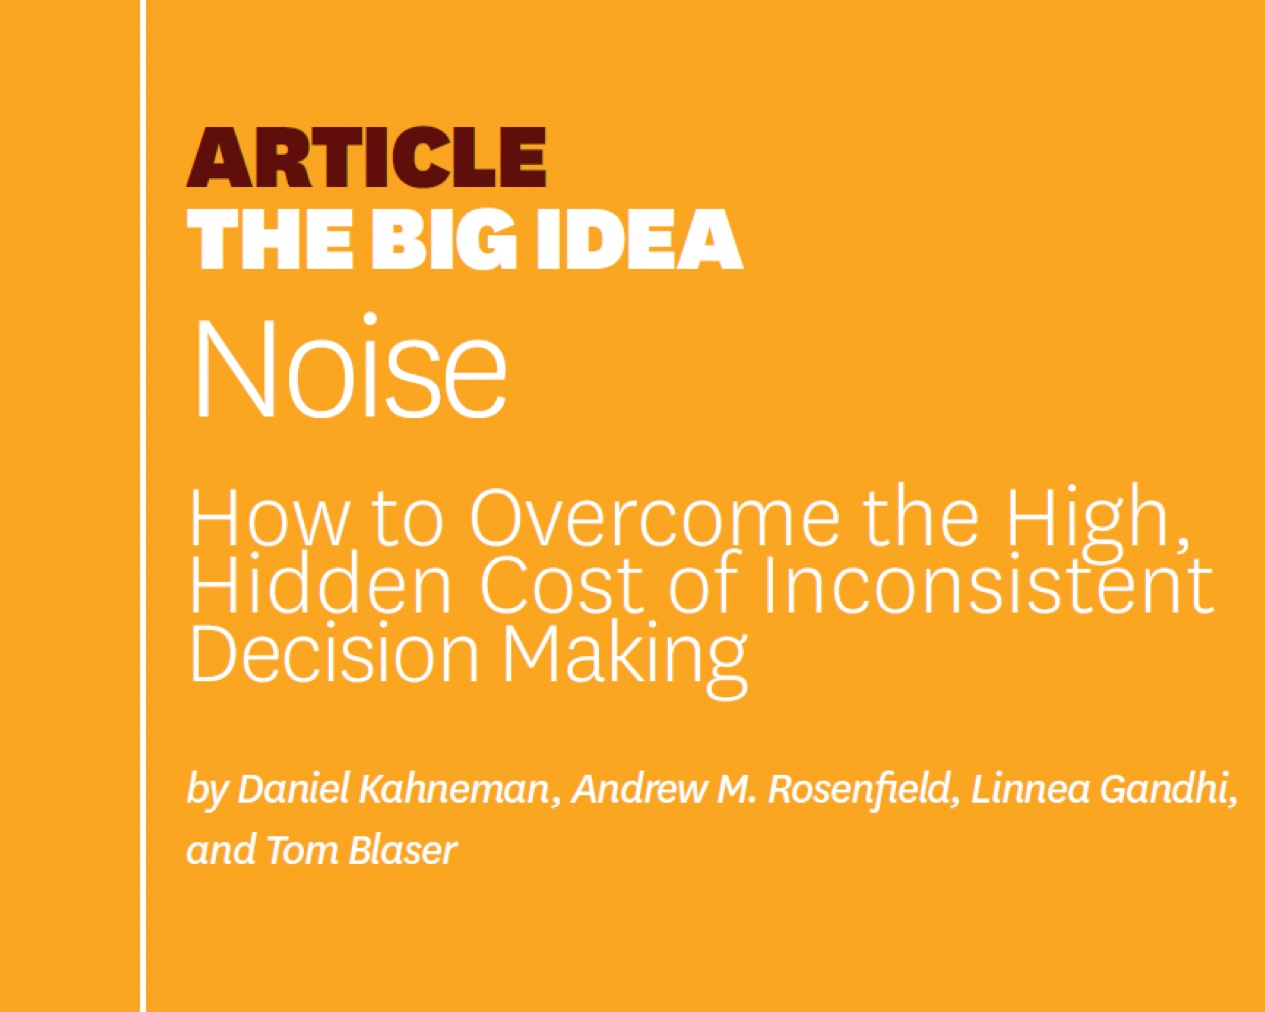 Session Theme: Reducing Noise in Decision Making